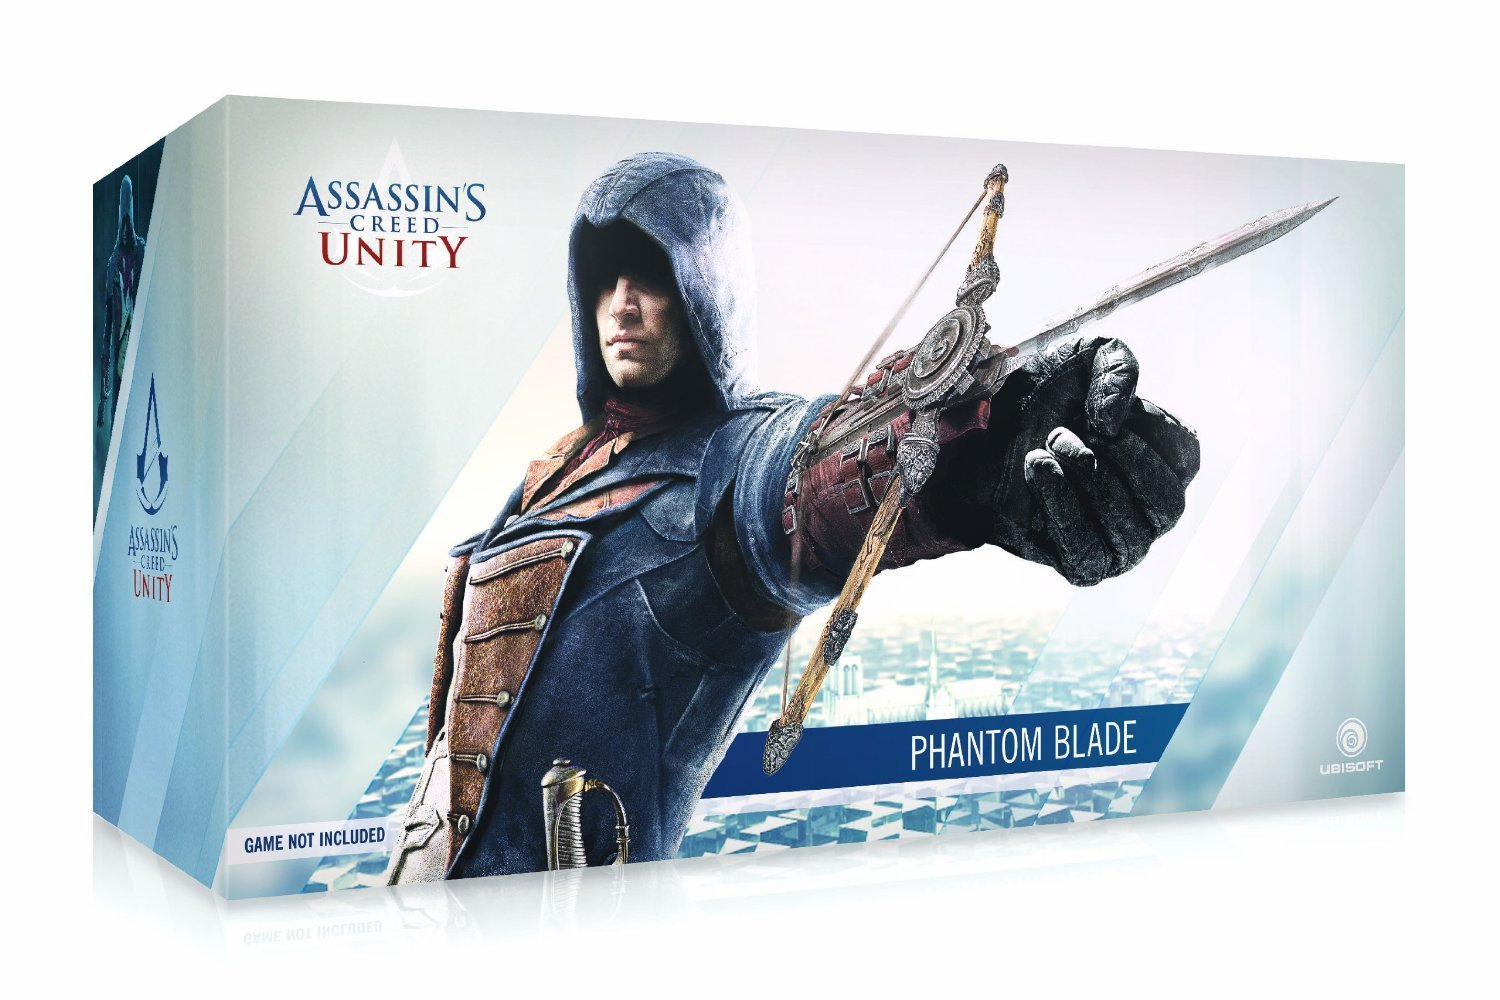 Assassin s creed unity review next available slot assassin s creed - Assassin S Creed Unity Review Next Available Slot Assassin S Creed 51